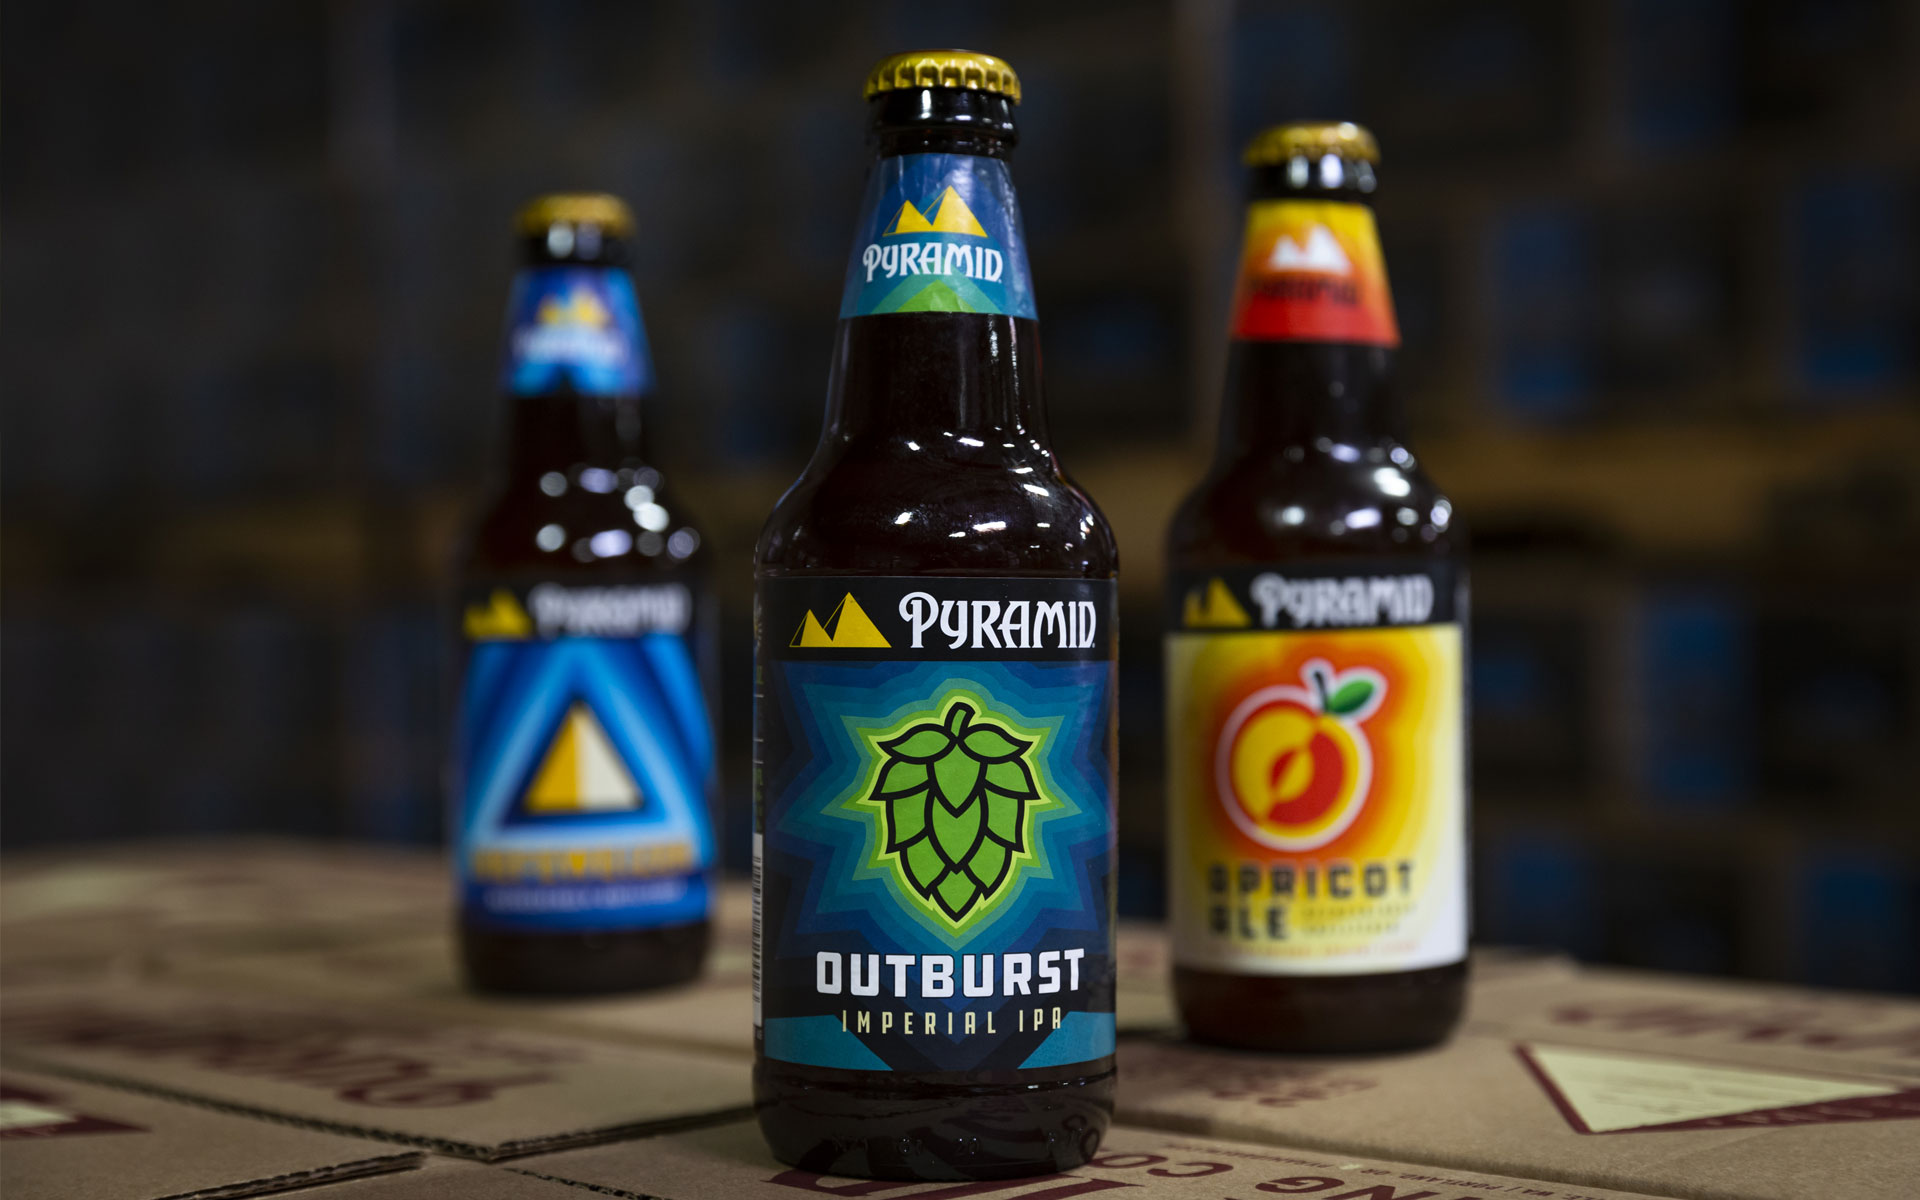 Closeup of an Outburst bottle with Apricot Ale and Hefeweizen in the background on Pyramid boxes